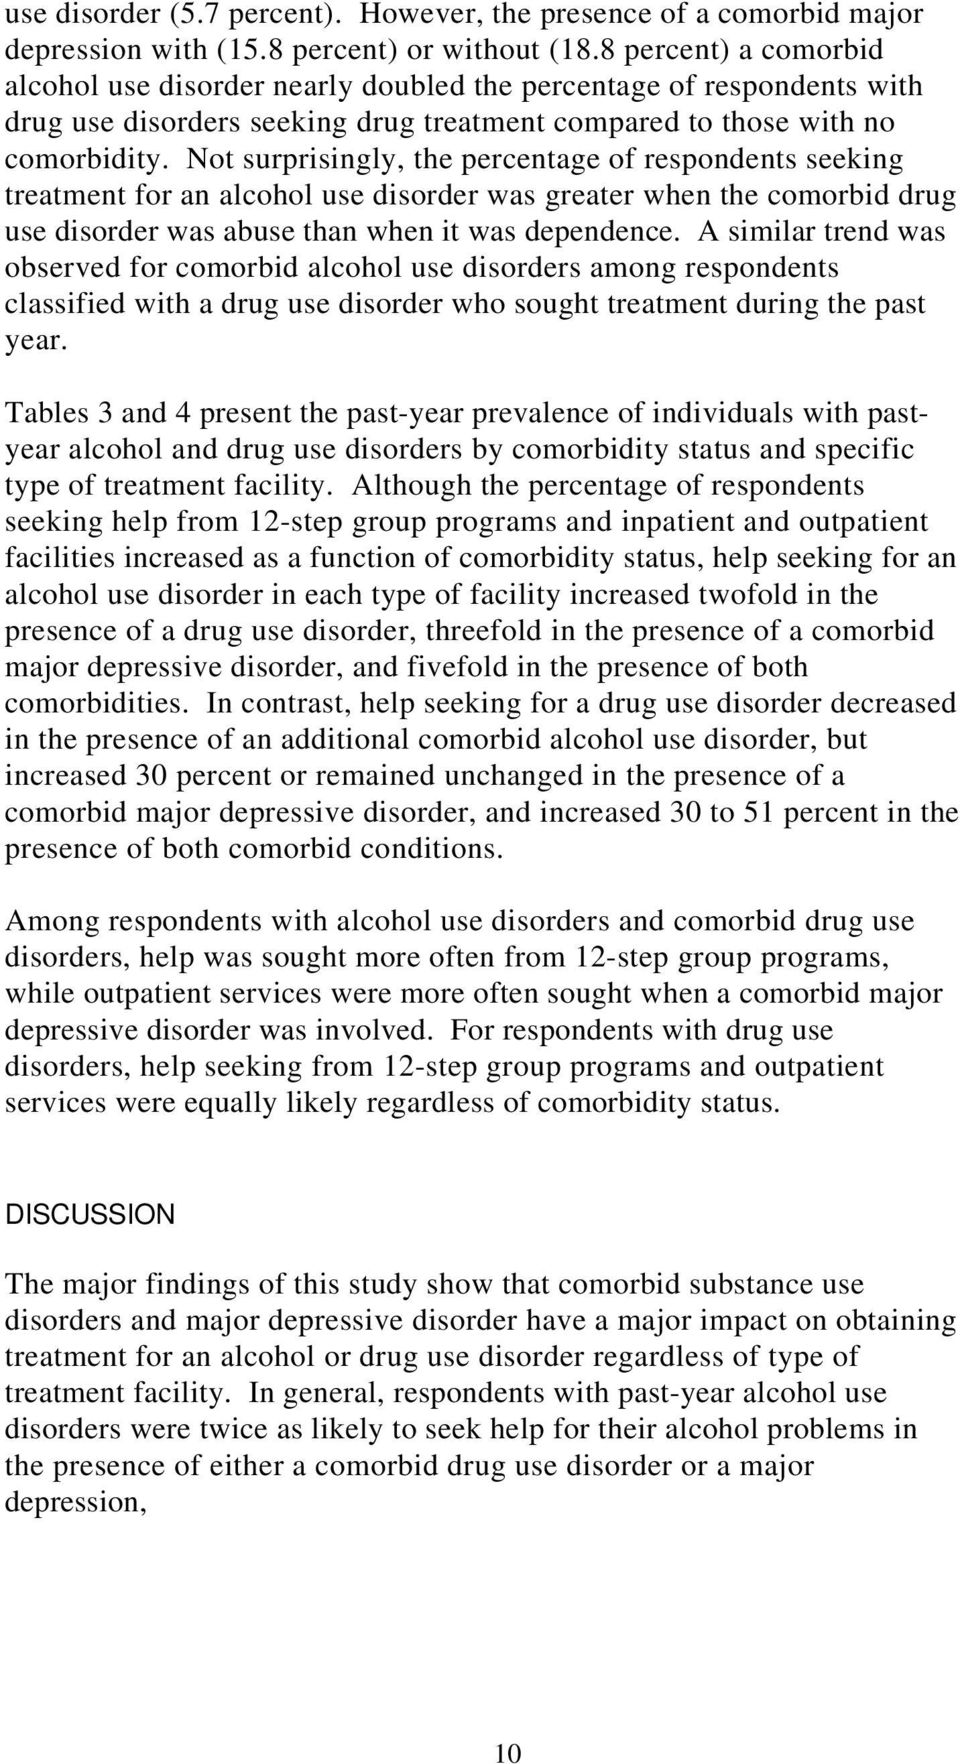 Not surprisingly, the percentage of respondents seeking treatment for an alcohol use disorder was greater when the comorbid drug use disorder was abuse than when it was dependence.